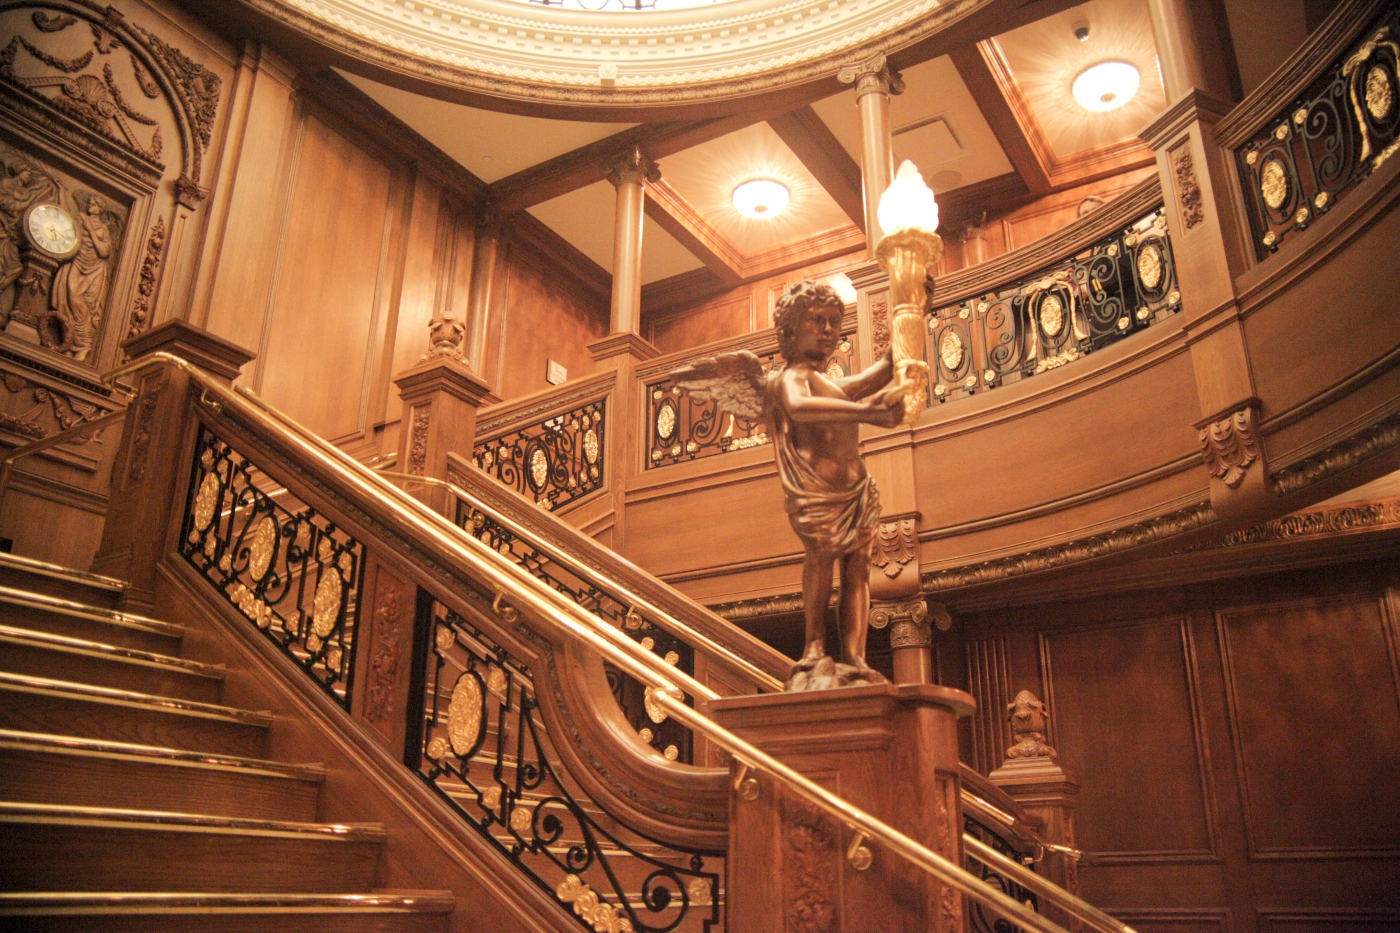 The grand staircase at the RMS Titanic Museum.